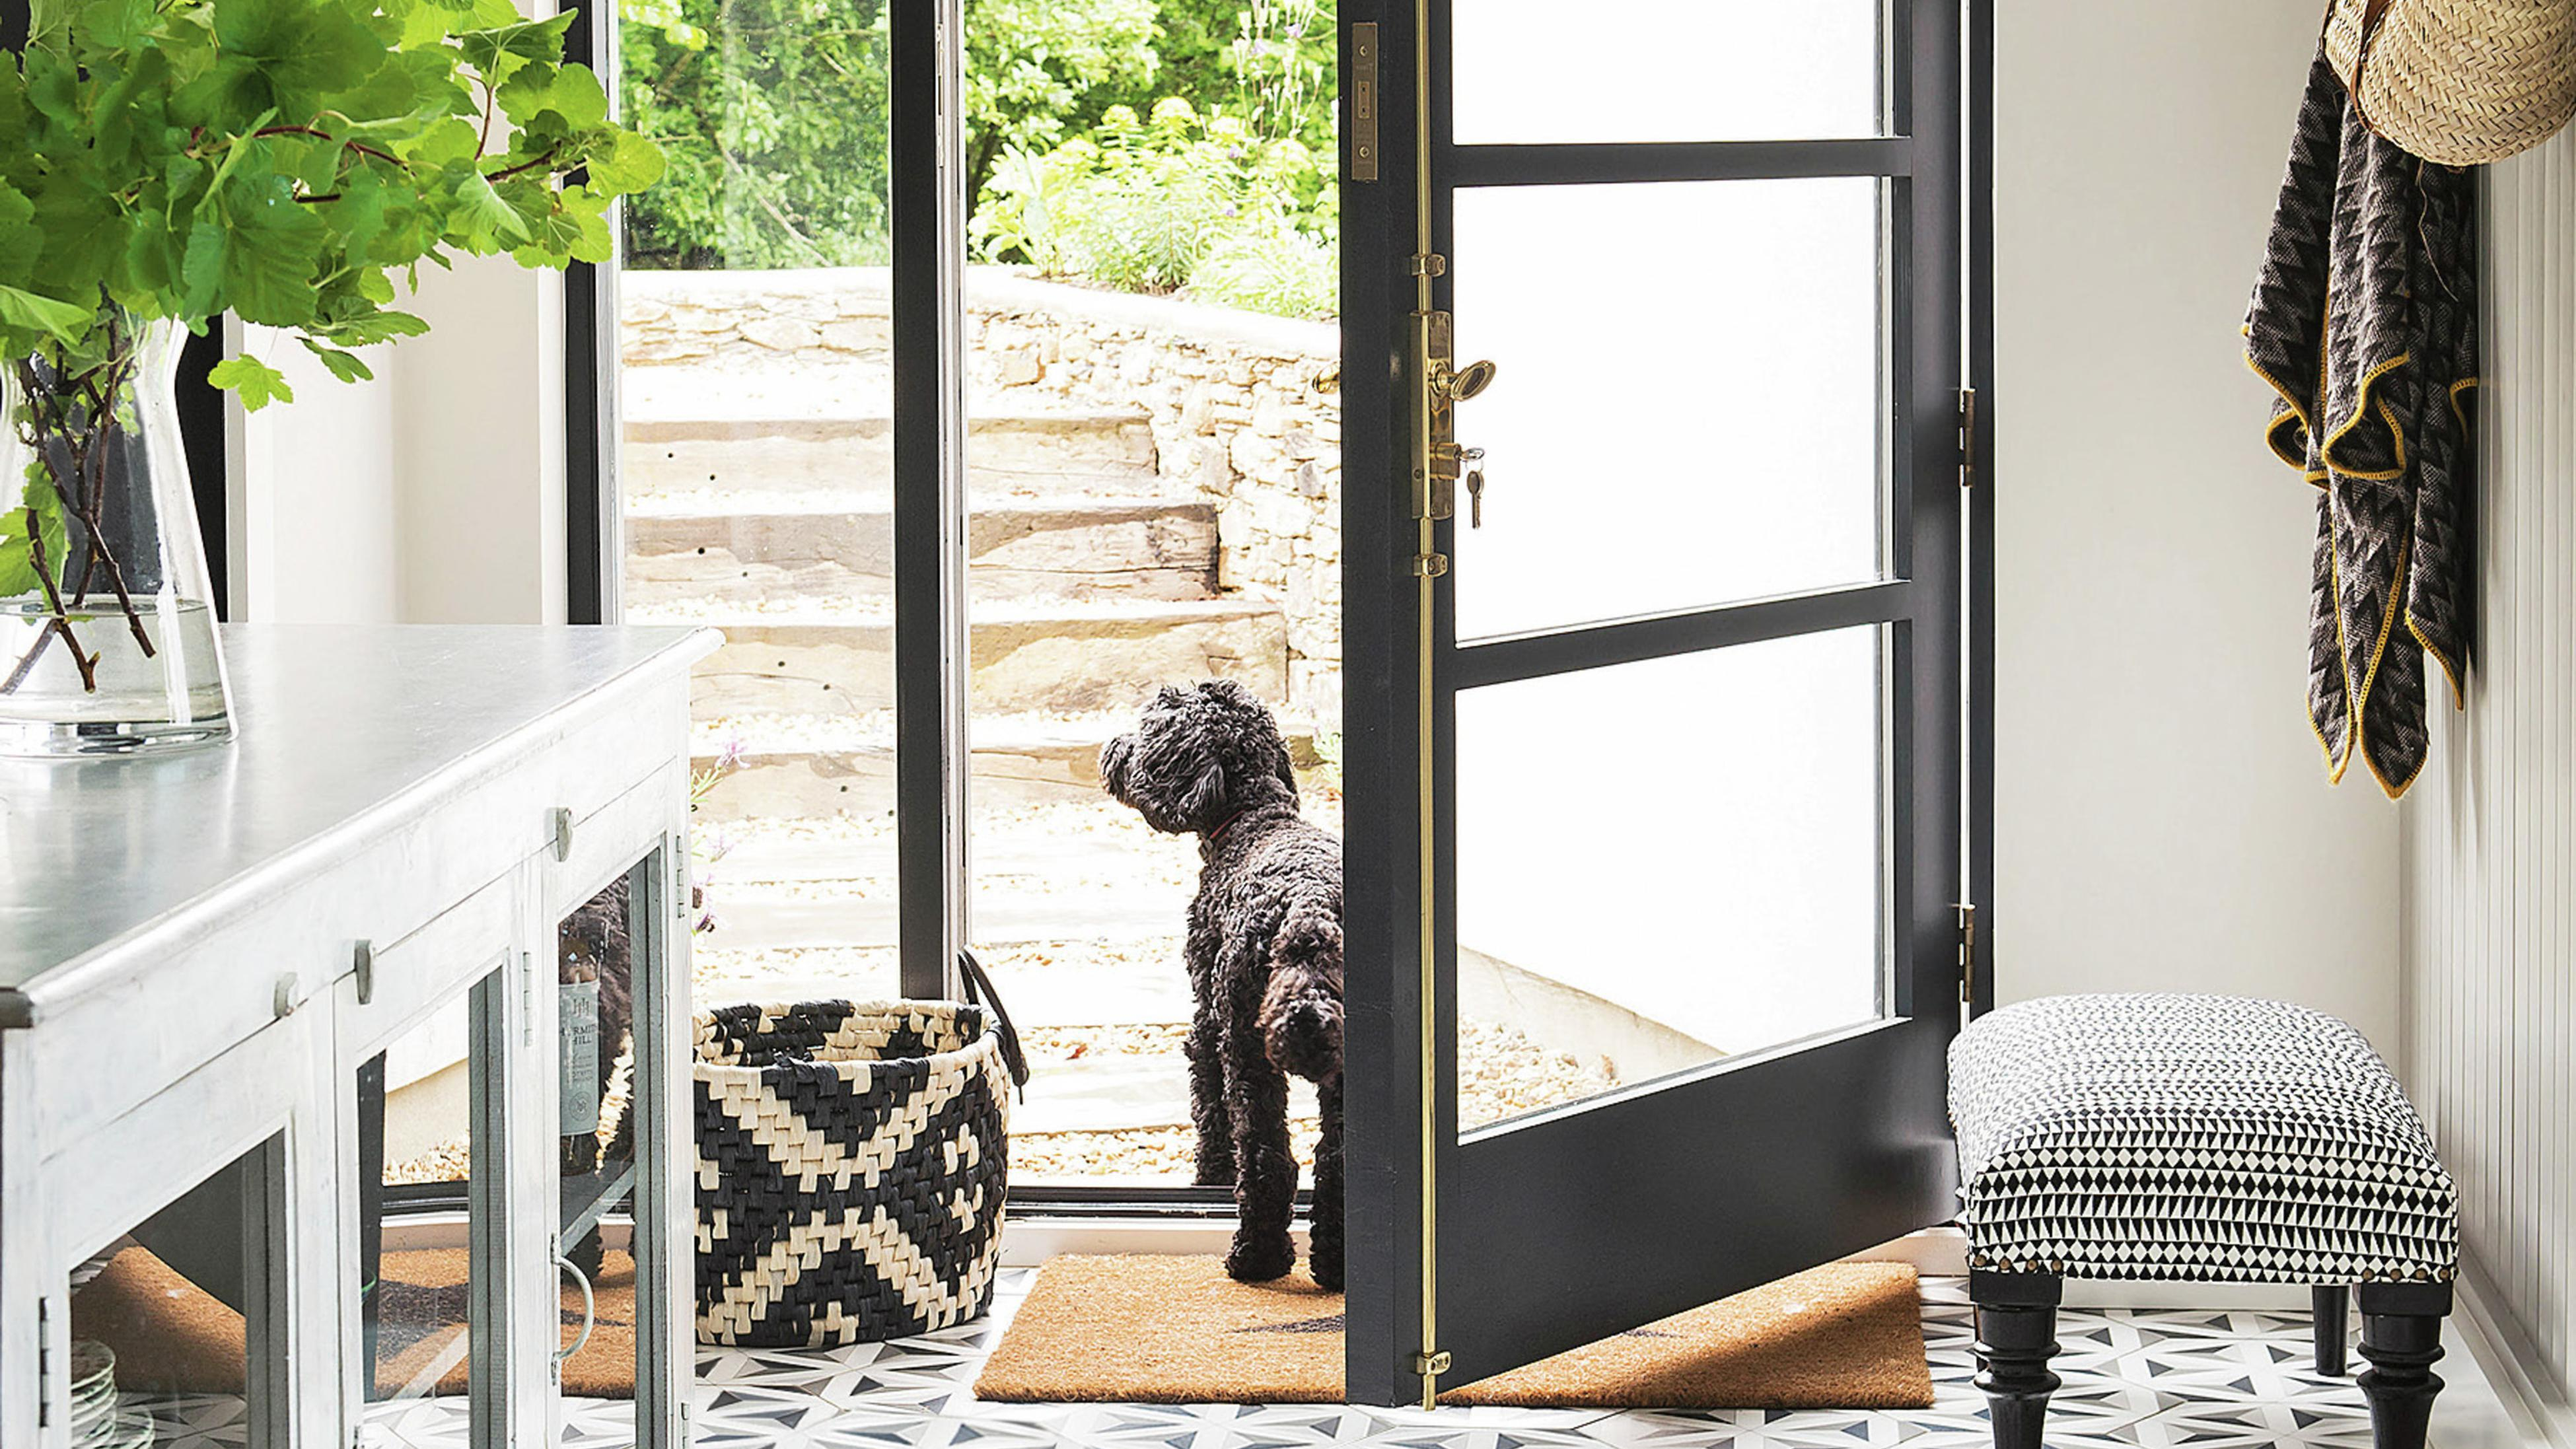 Entrance from front door with black cavoodle dog standing at entry.